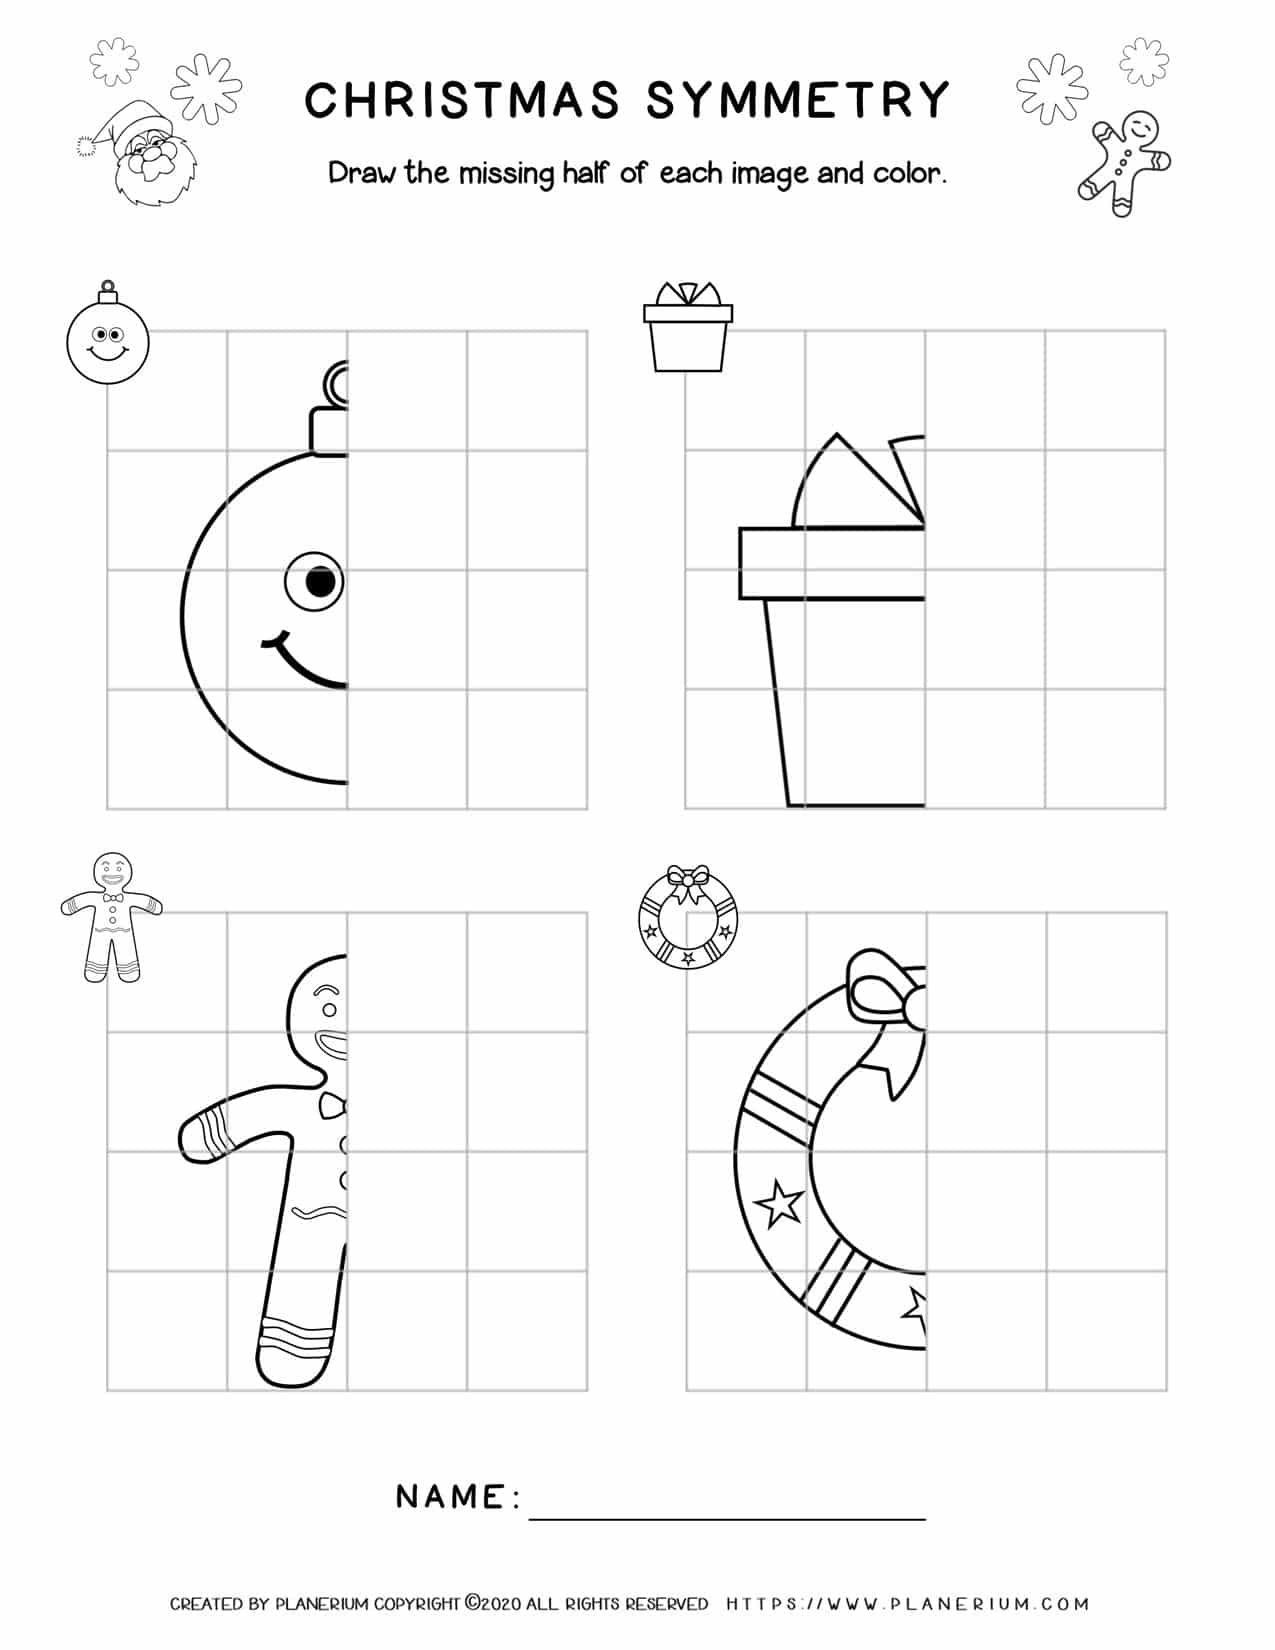 Christmas Worksheets - Symmetry Drawing | Planerium